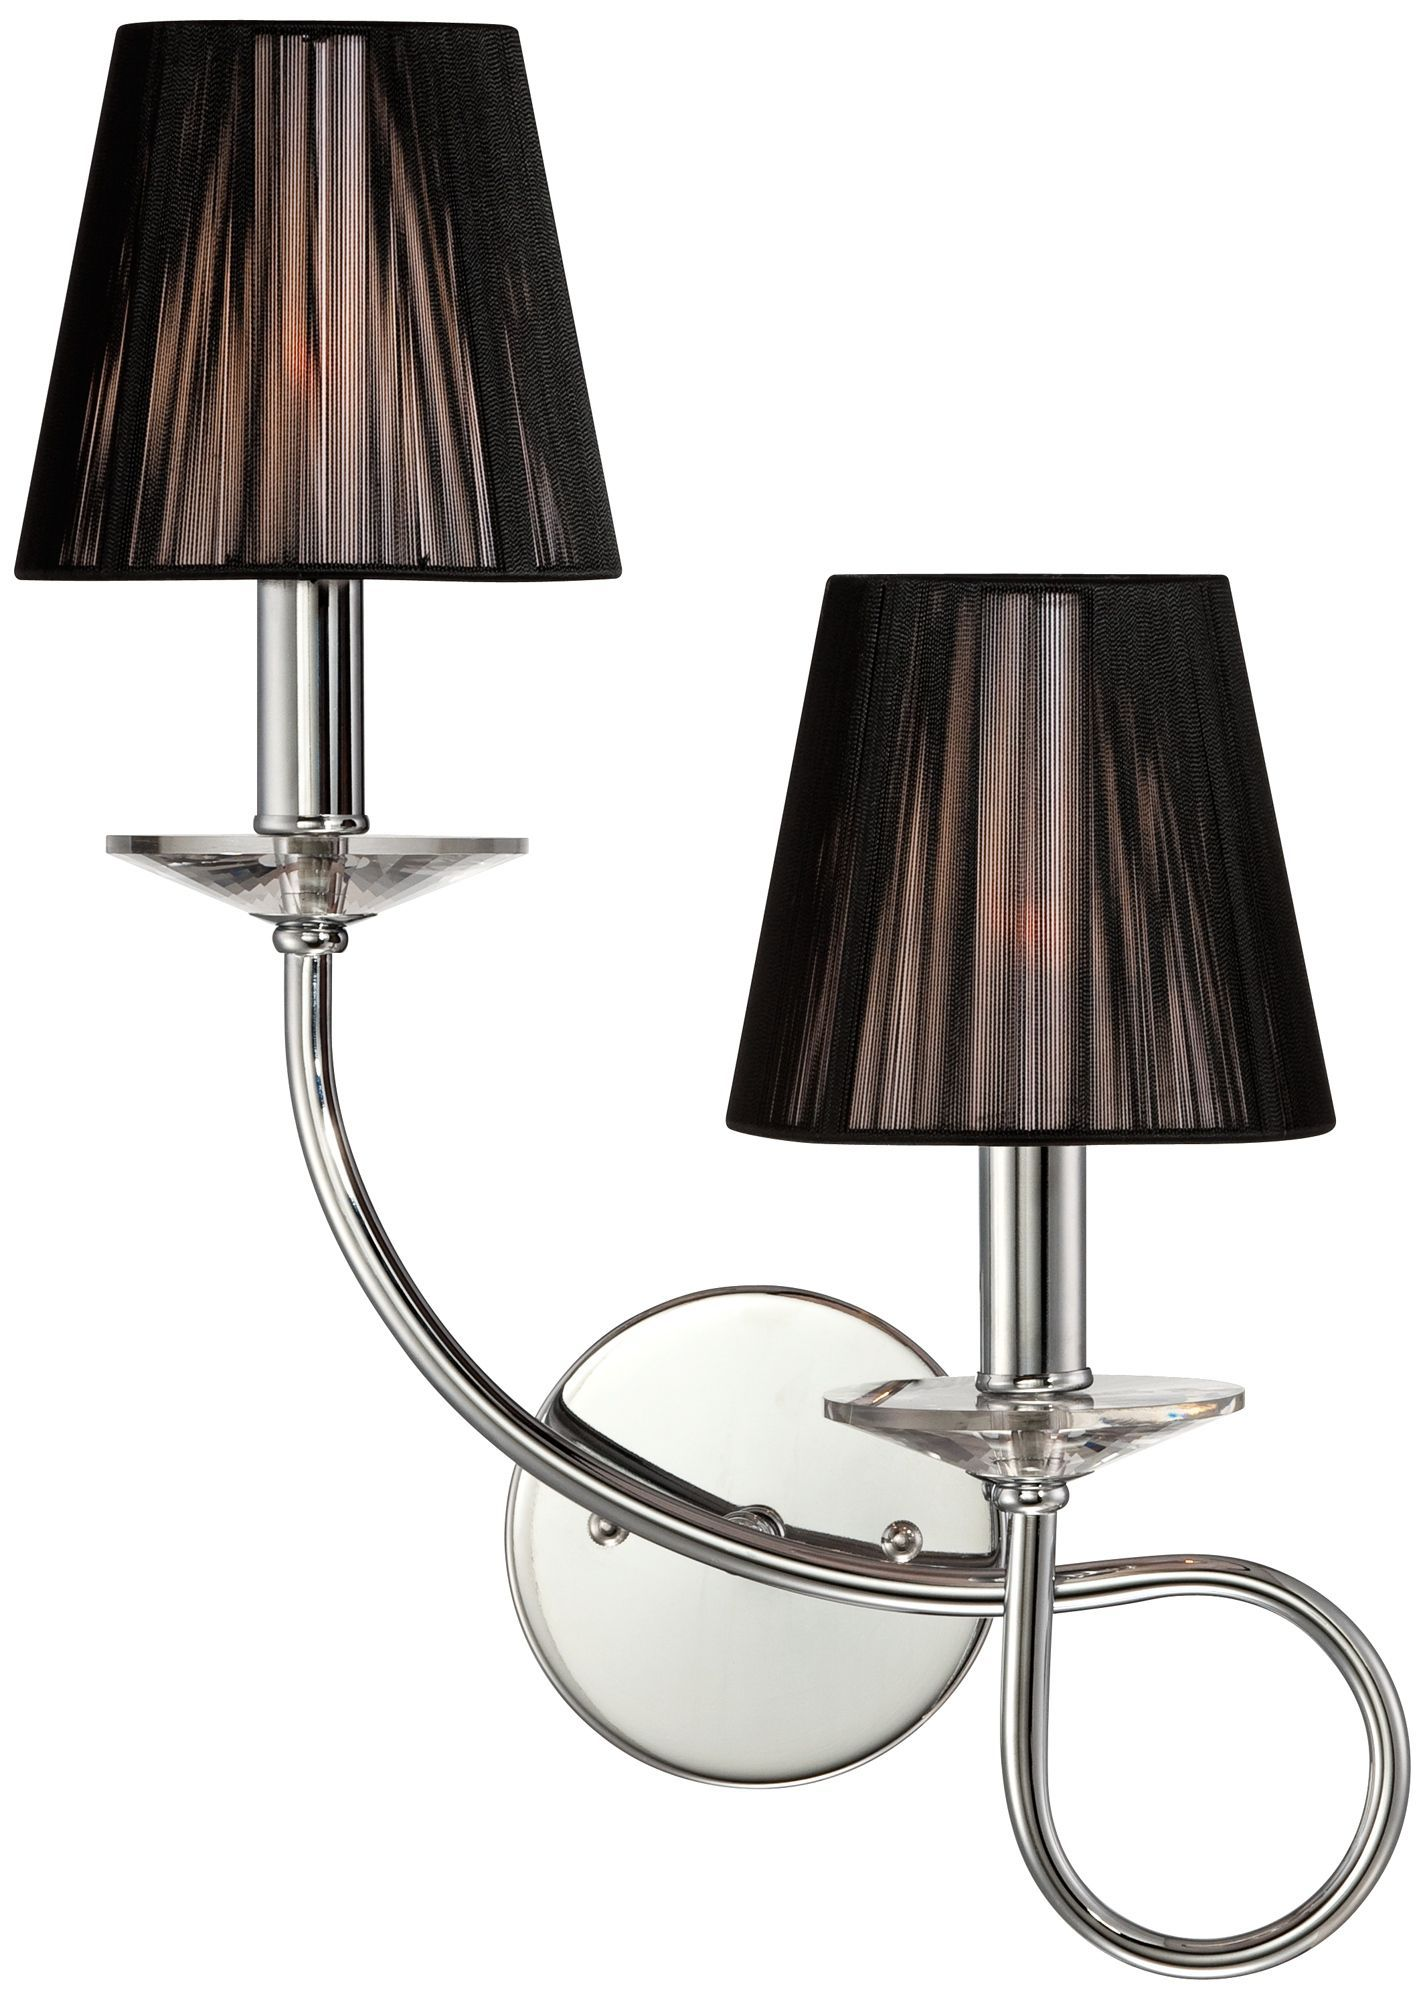 Double Swirl Chrome with Black Shade Possini Euro Sconce ... on Decorative Wall Sconces Candle Holders Chrome Nickel id=49728